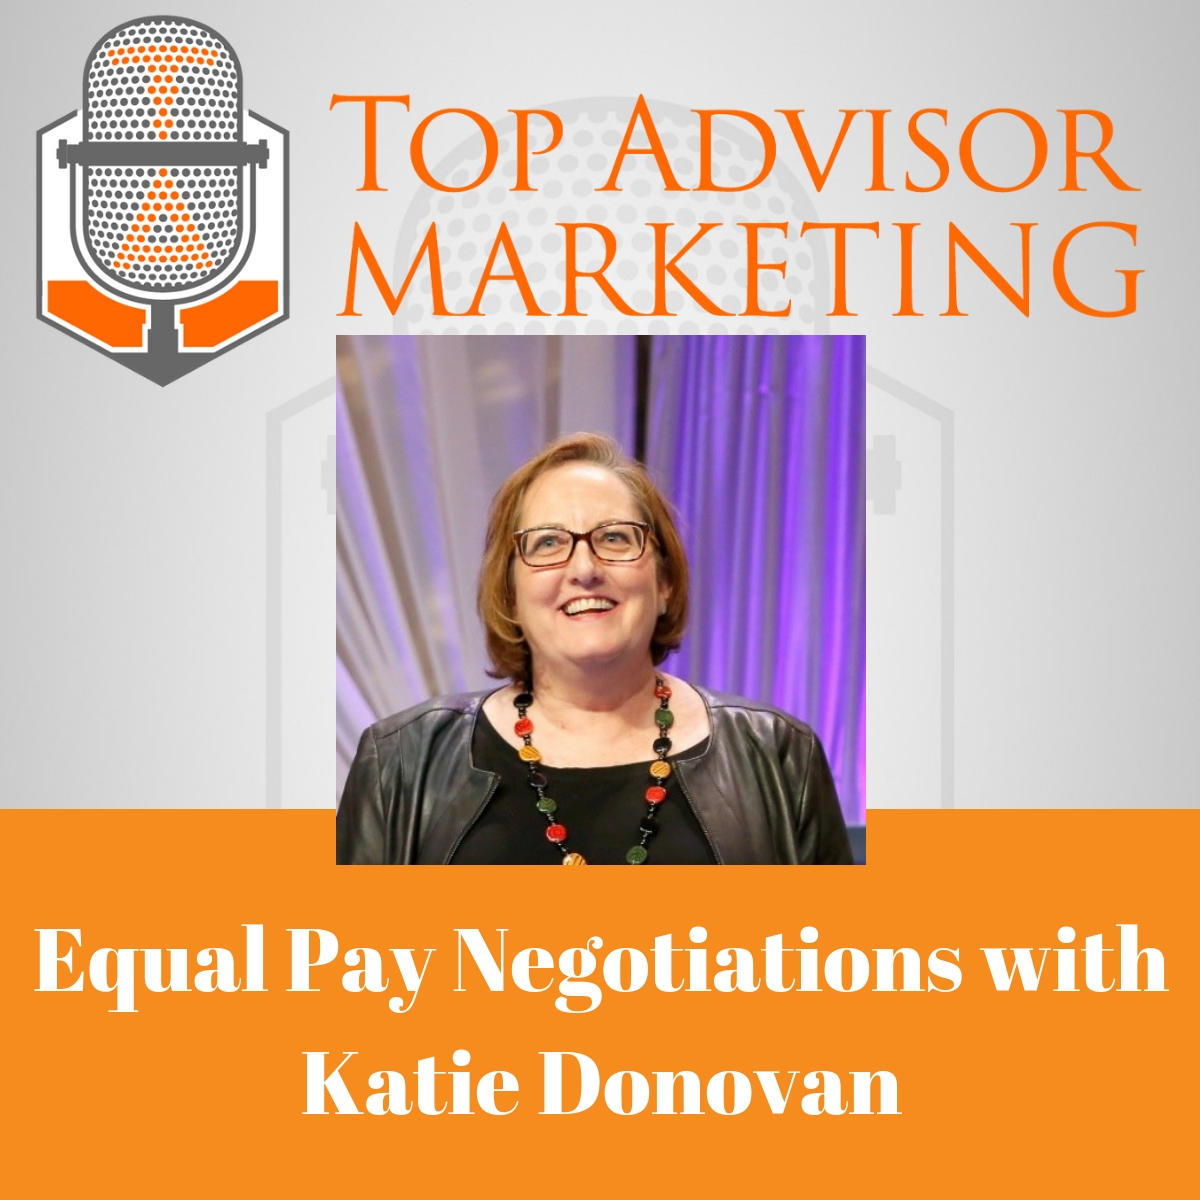 Episode 151 - Equal Pay Negotiations with Katie Donovan